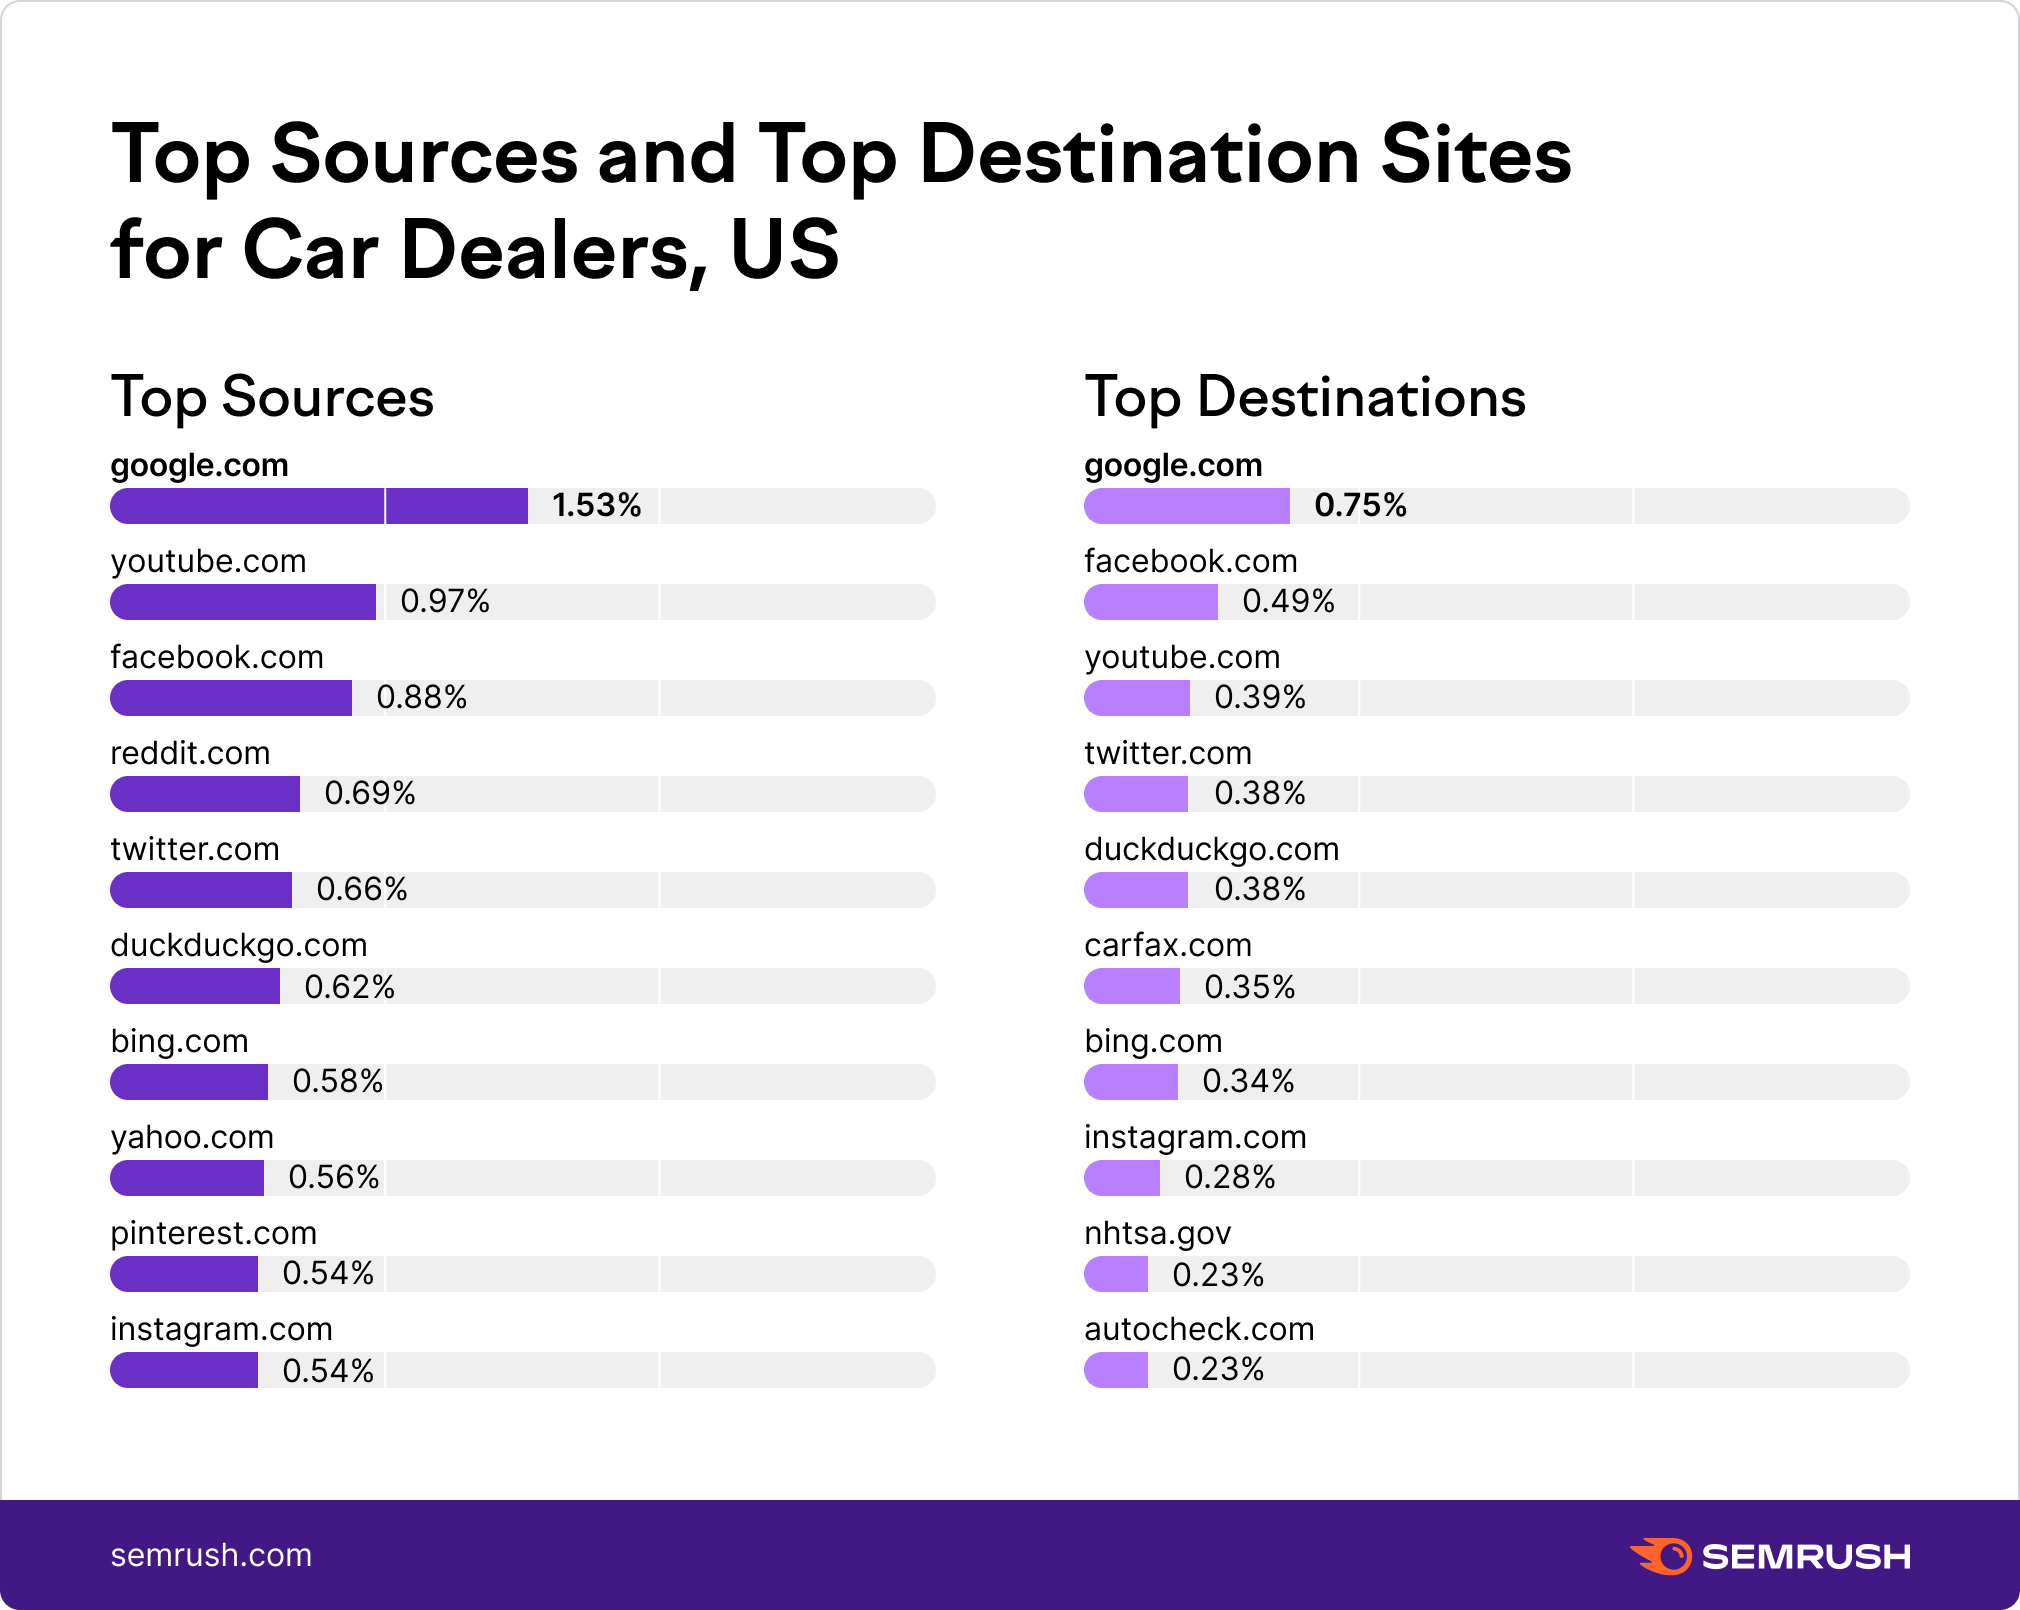 Top Sources and Top Destination Sites for Car Dealers, US